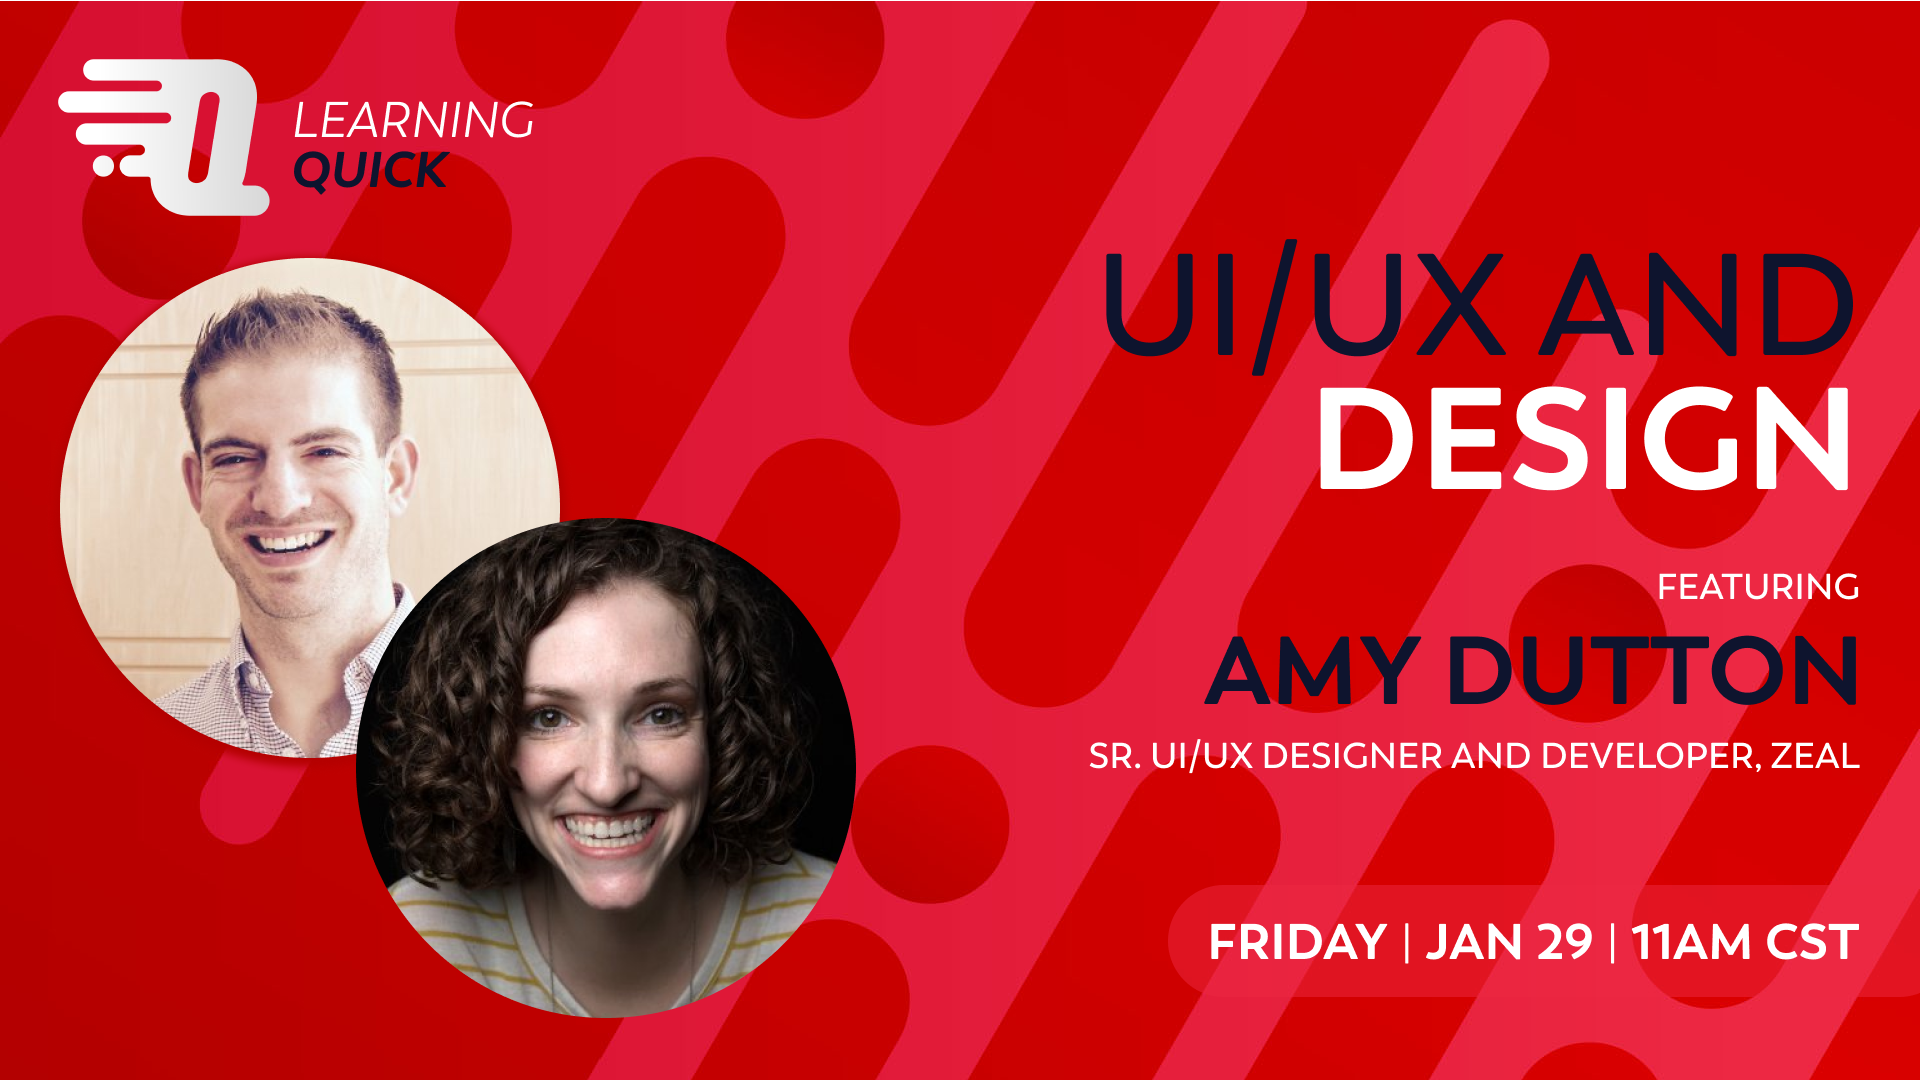 UI/UX and Design with Amy Dutton